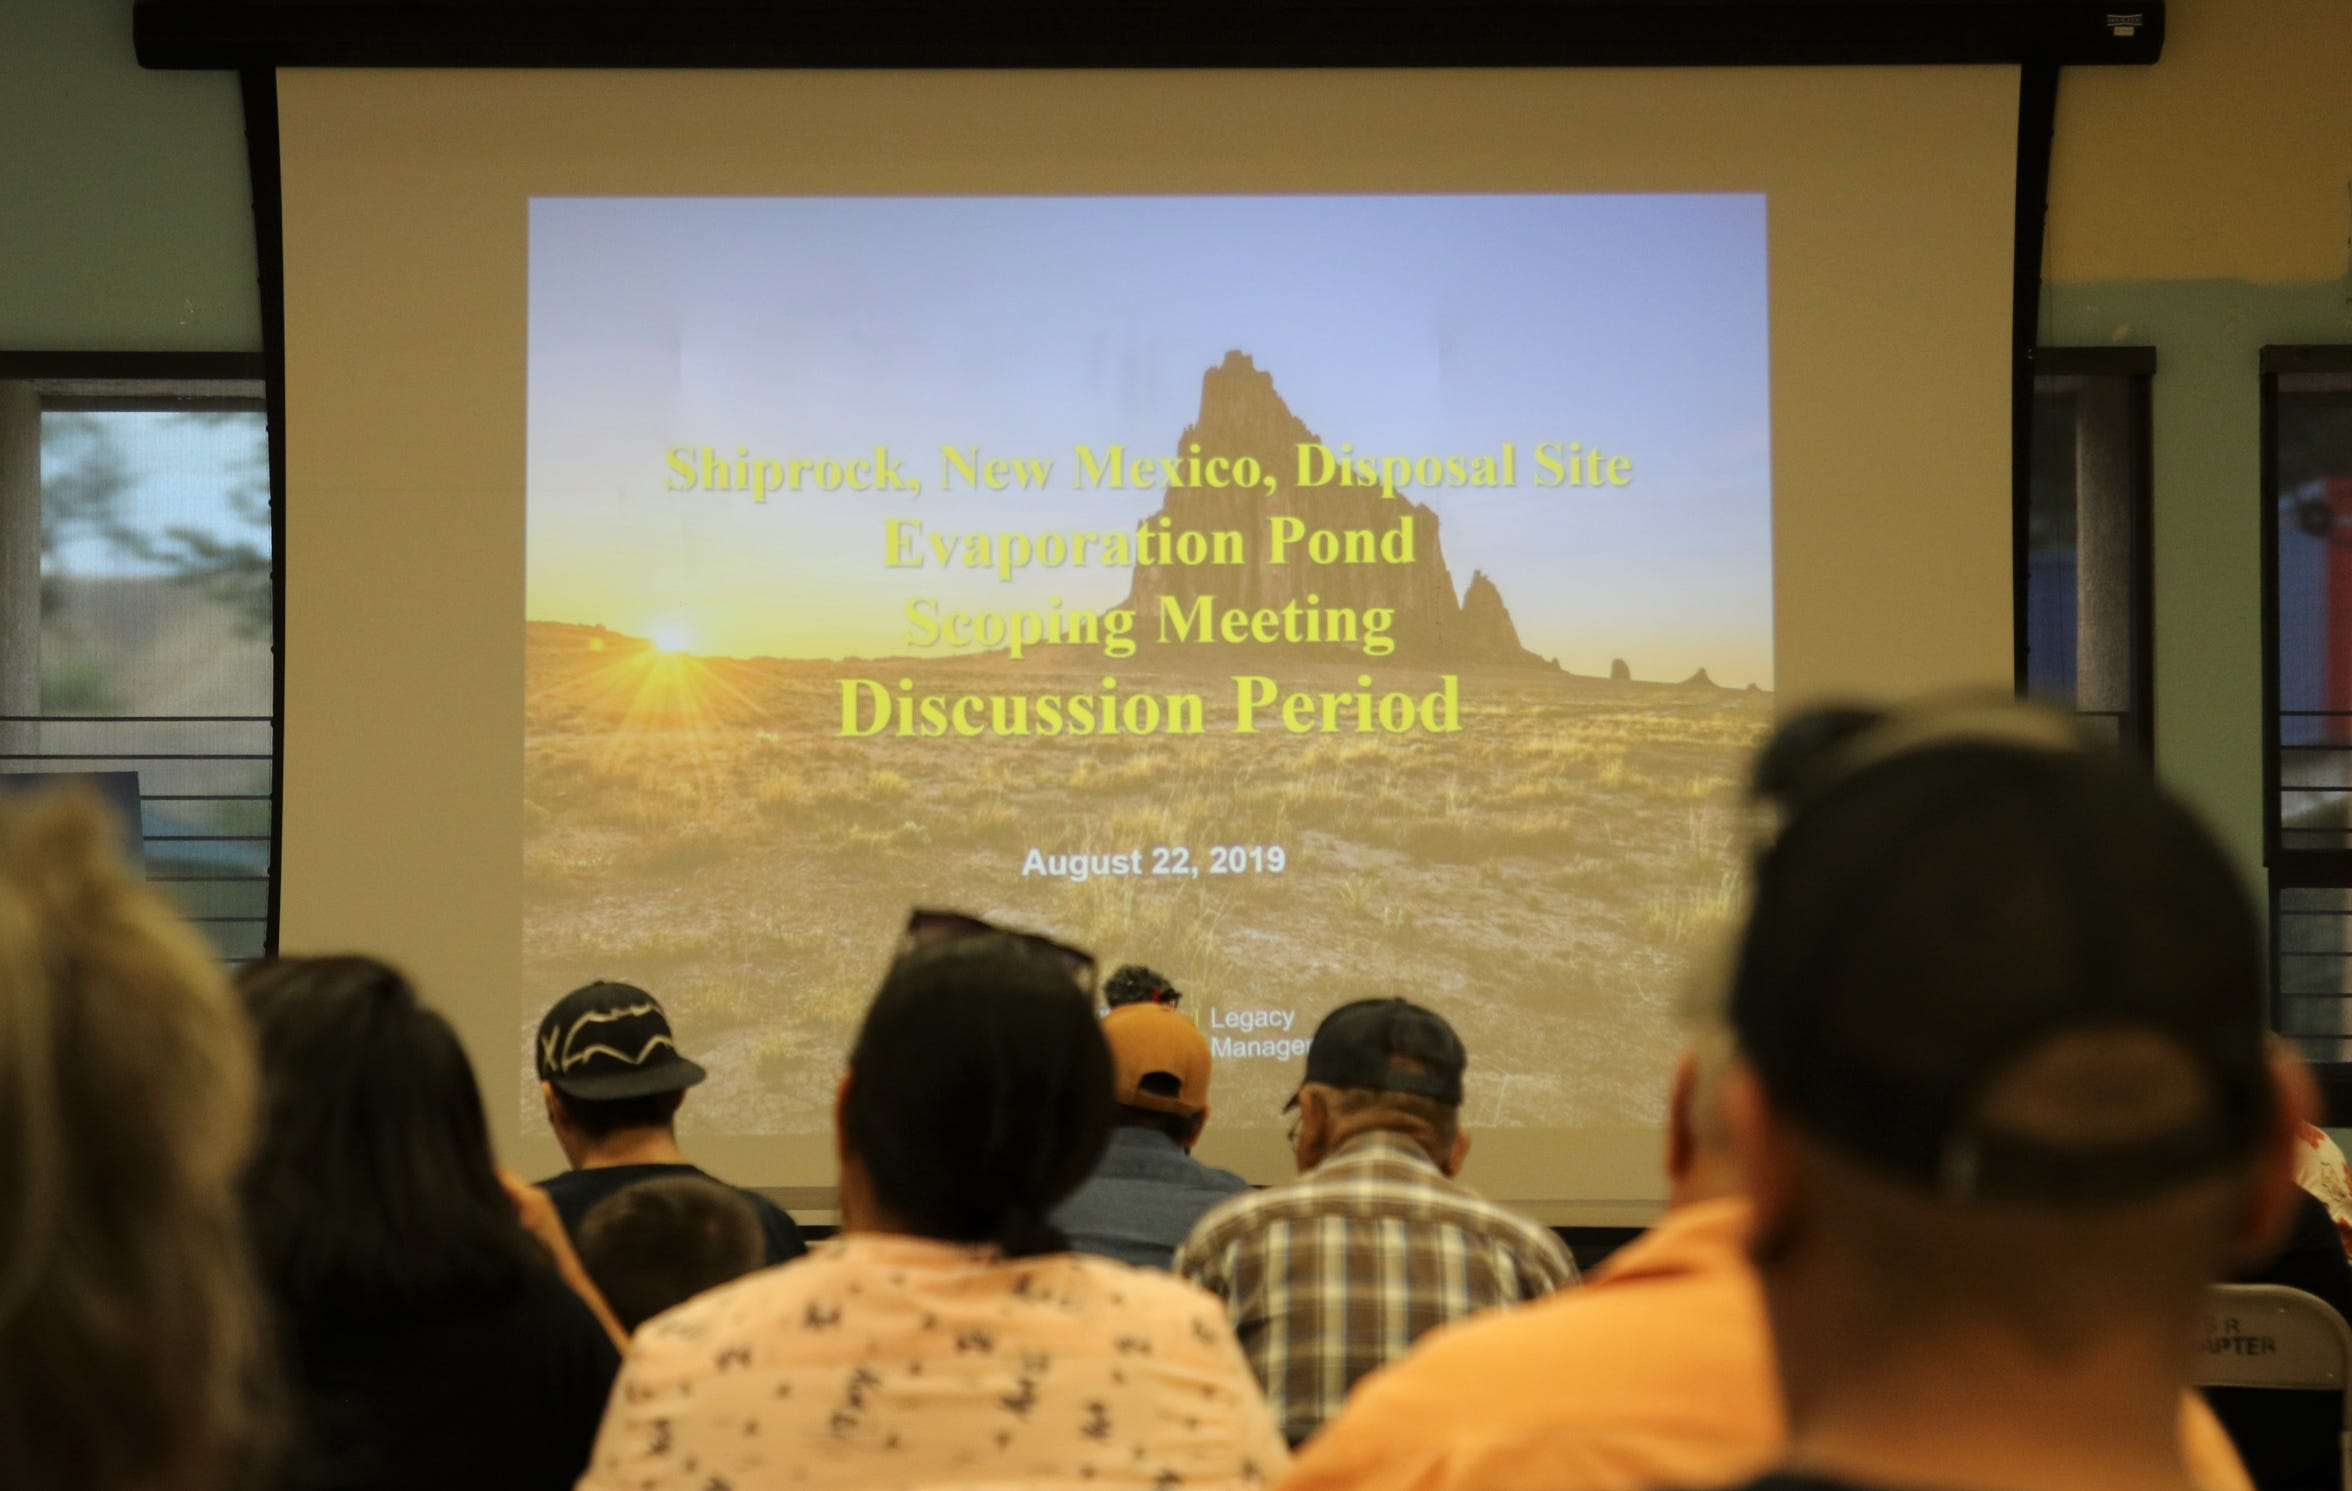 Dozens attended the scoping meeting by the U.S. Department of Energy's Office of Legacy Management on Aug. 22 at the Shiprock Chapter house.